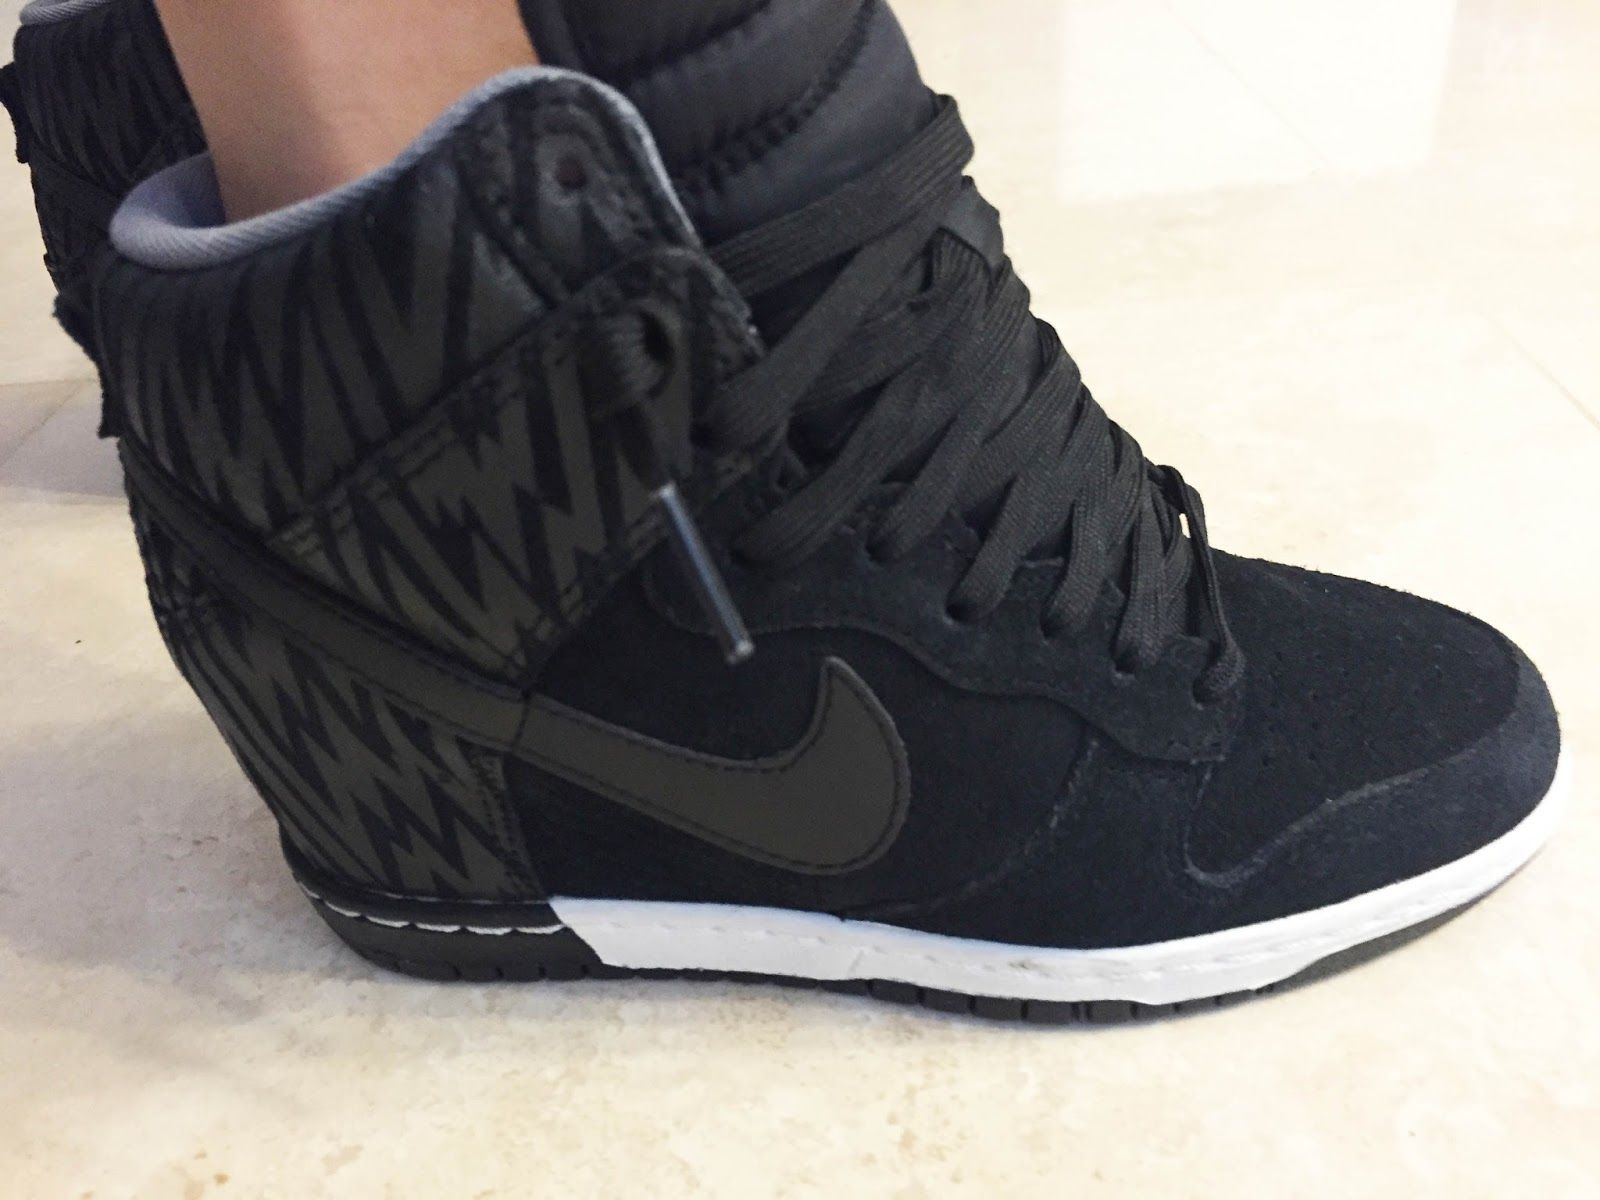 2015 0804 Nike Dunk Sky Hi Wedge Sneakers Black3AAnthracite3ACool Grey Side  Close.jpg (1600